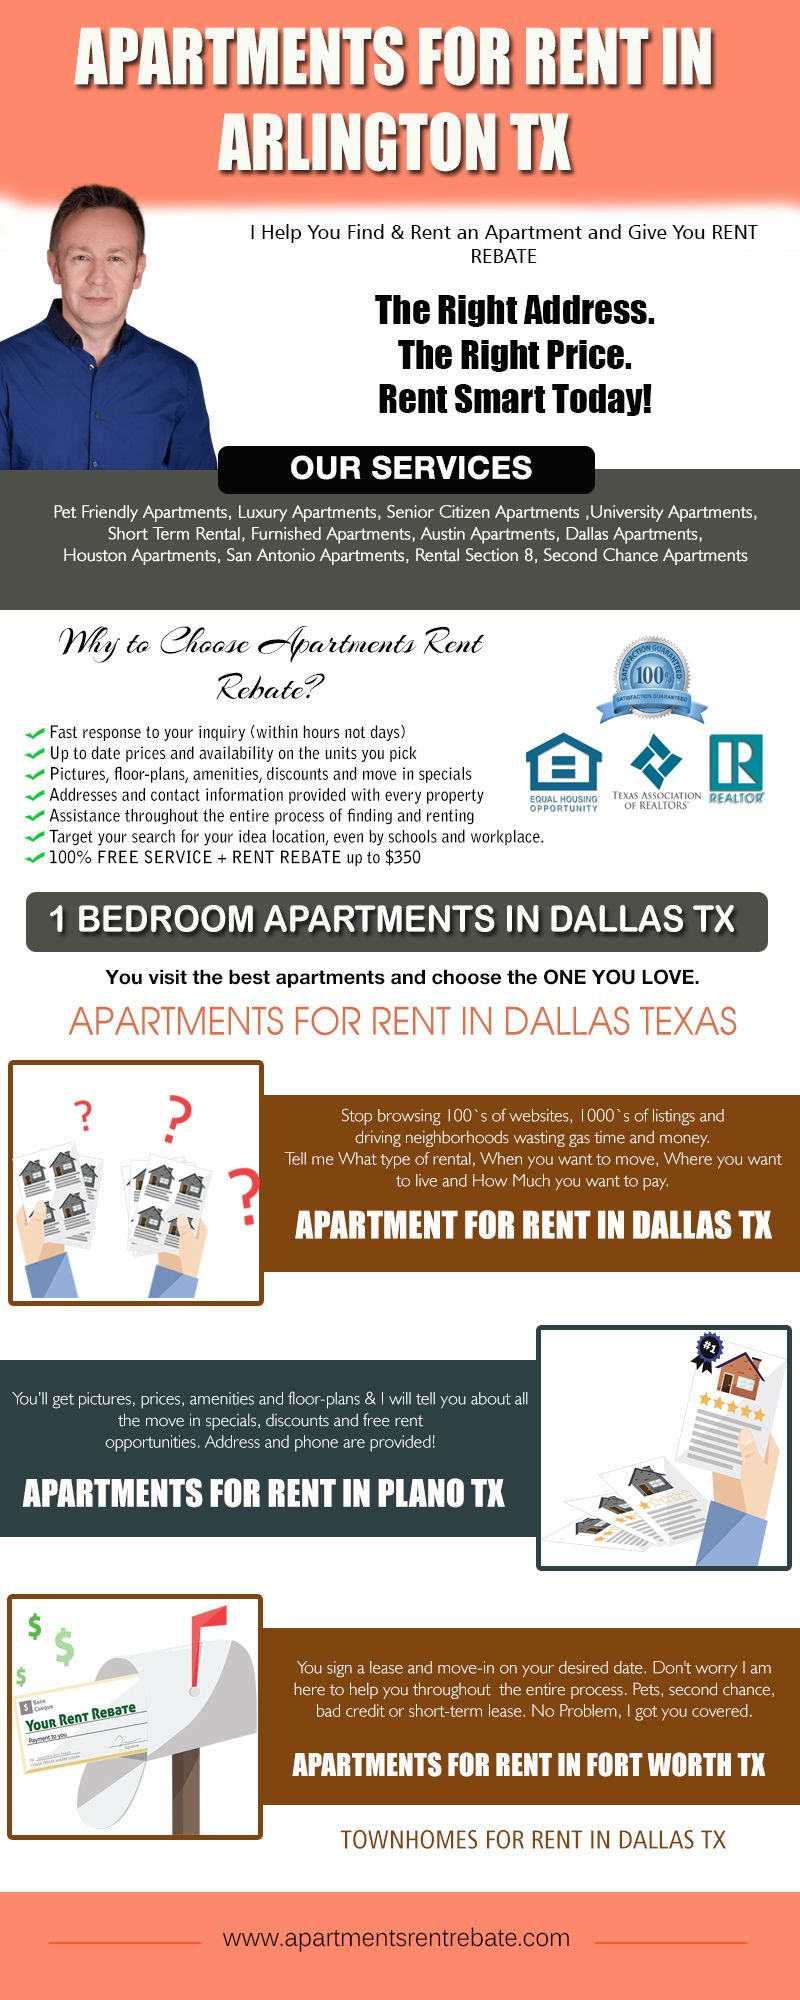 Ironically Townhomes For In Dallas Tx Today Belong To The Category Of Affordable Housing And Are Grand Only Name